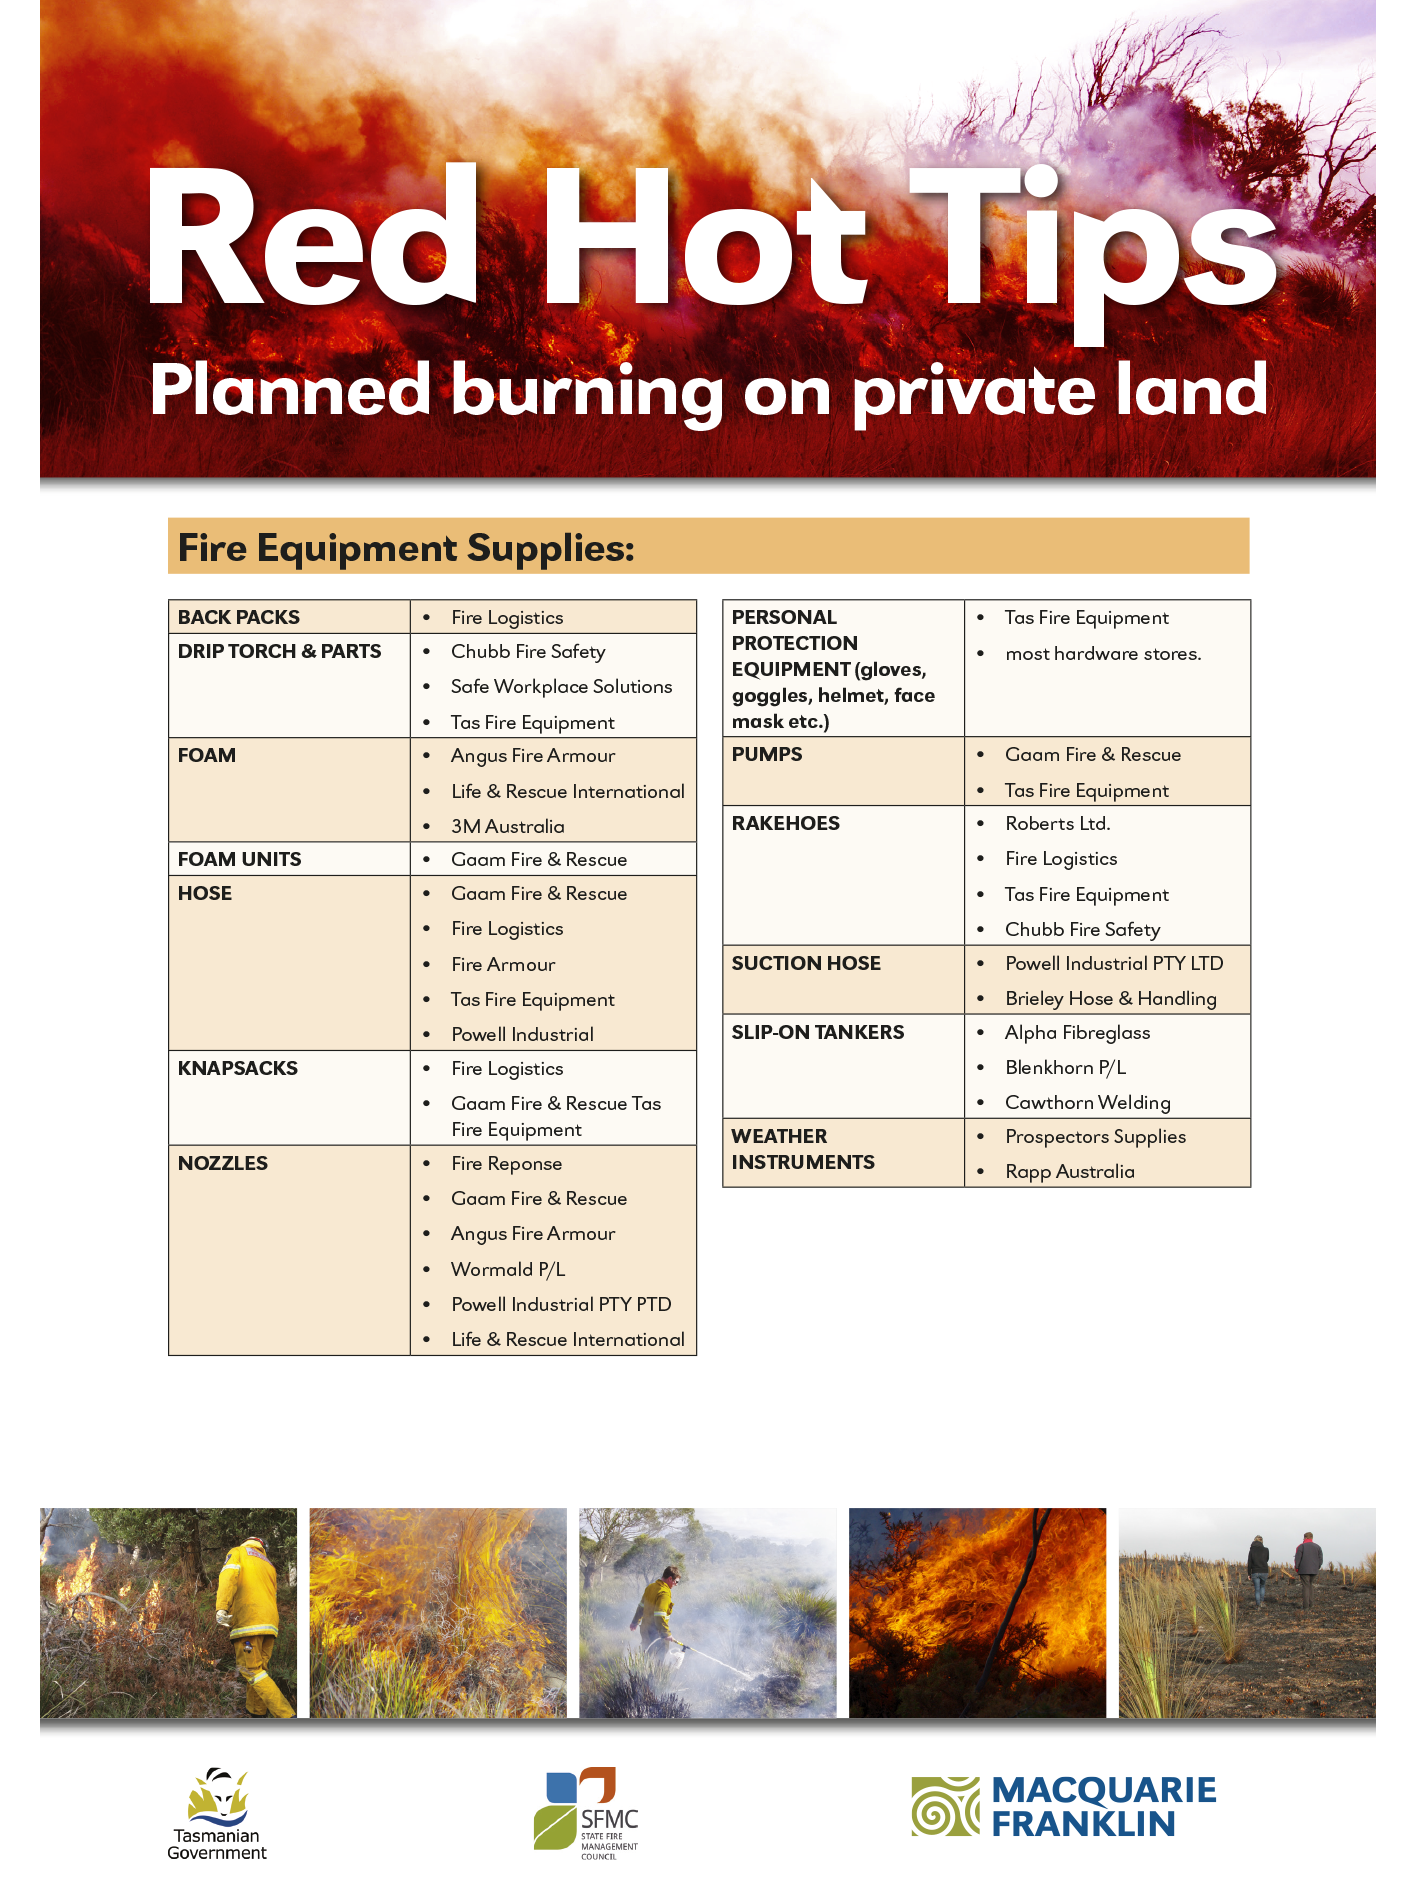 Red Hot Tips Fire Equip List